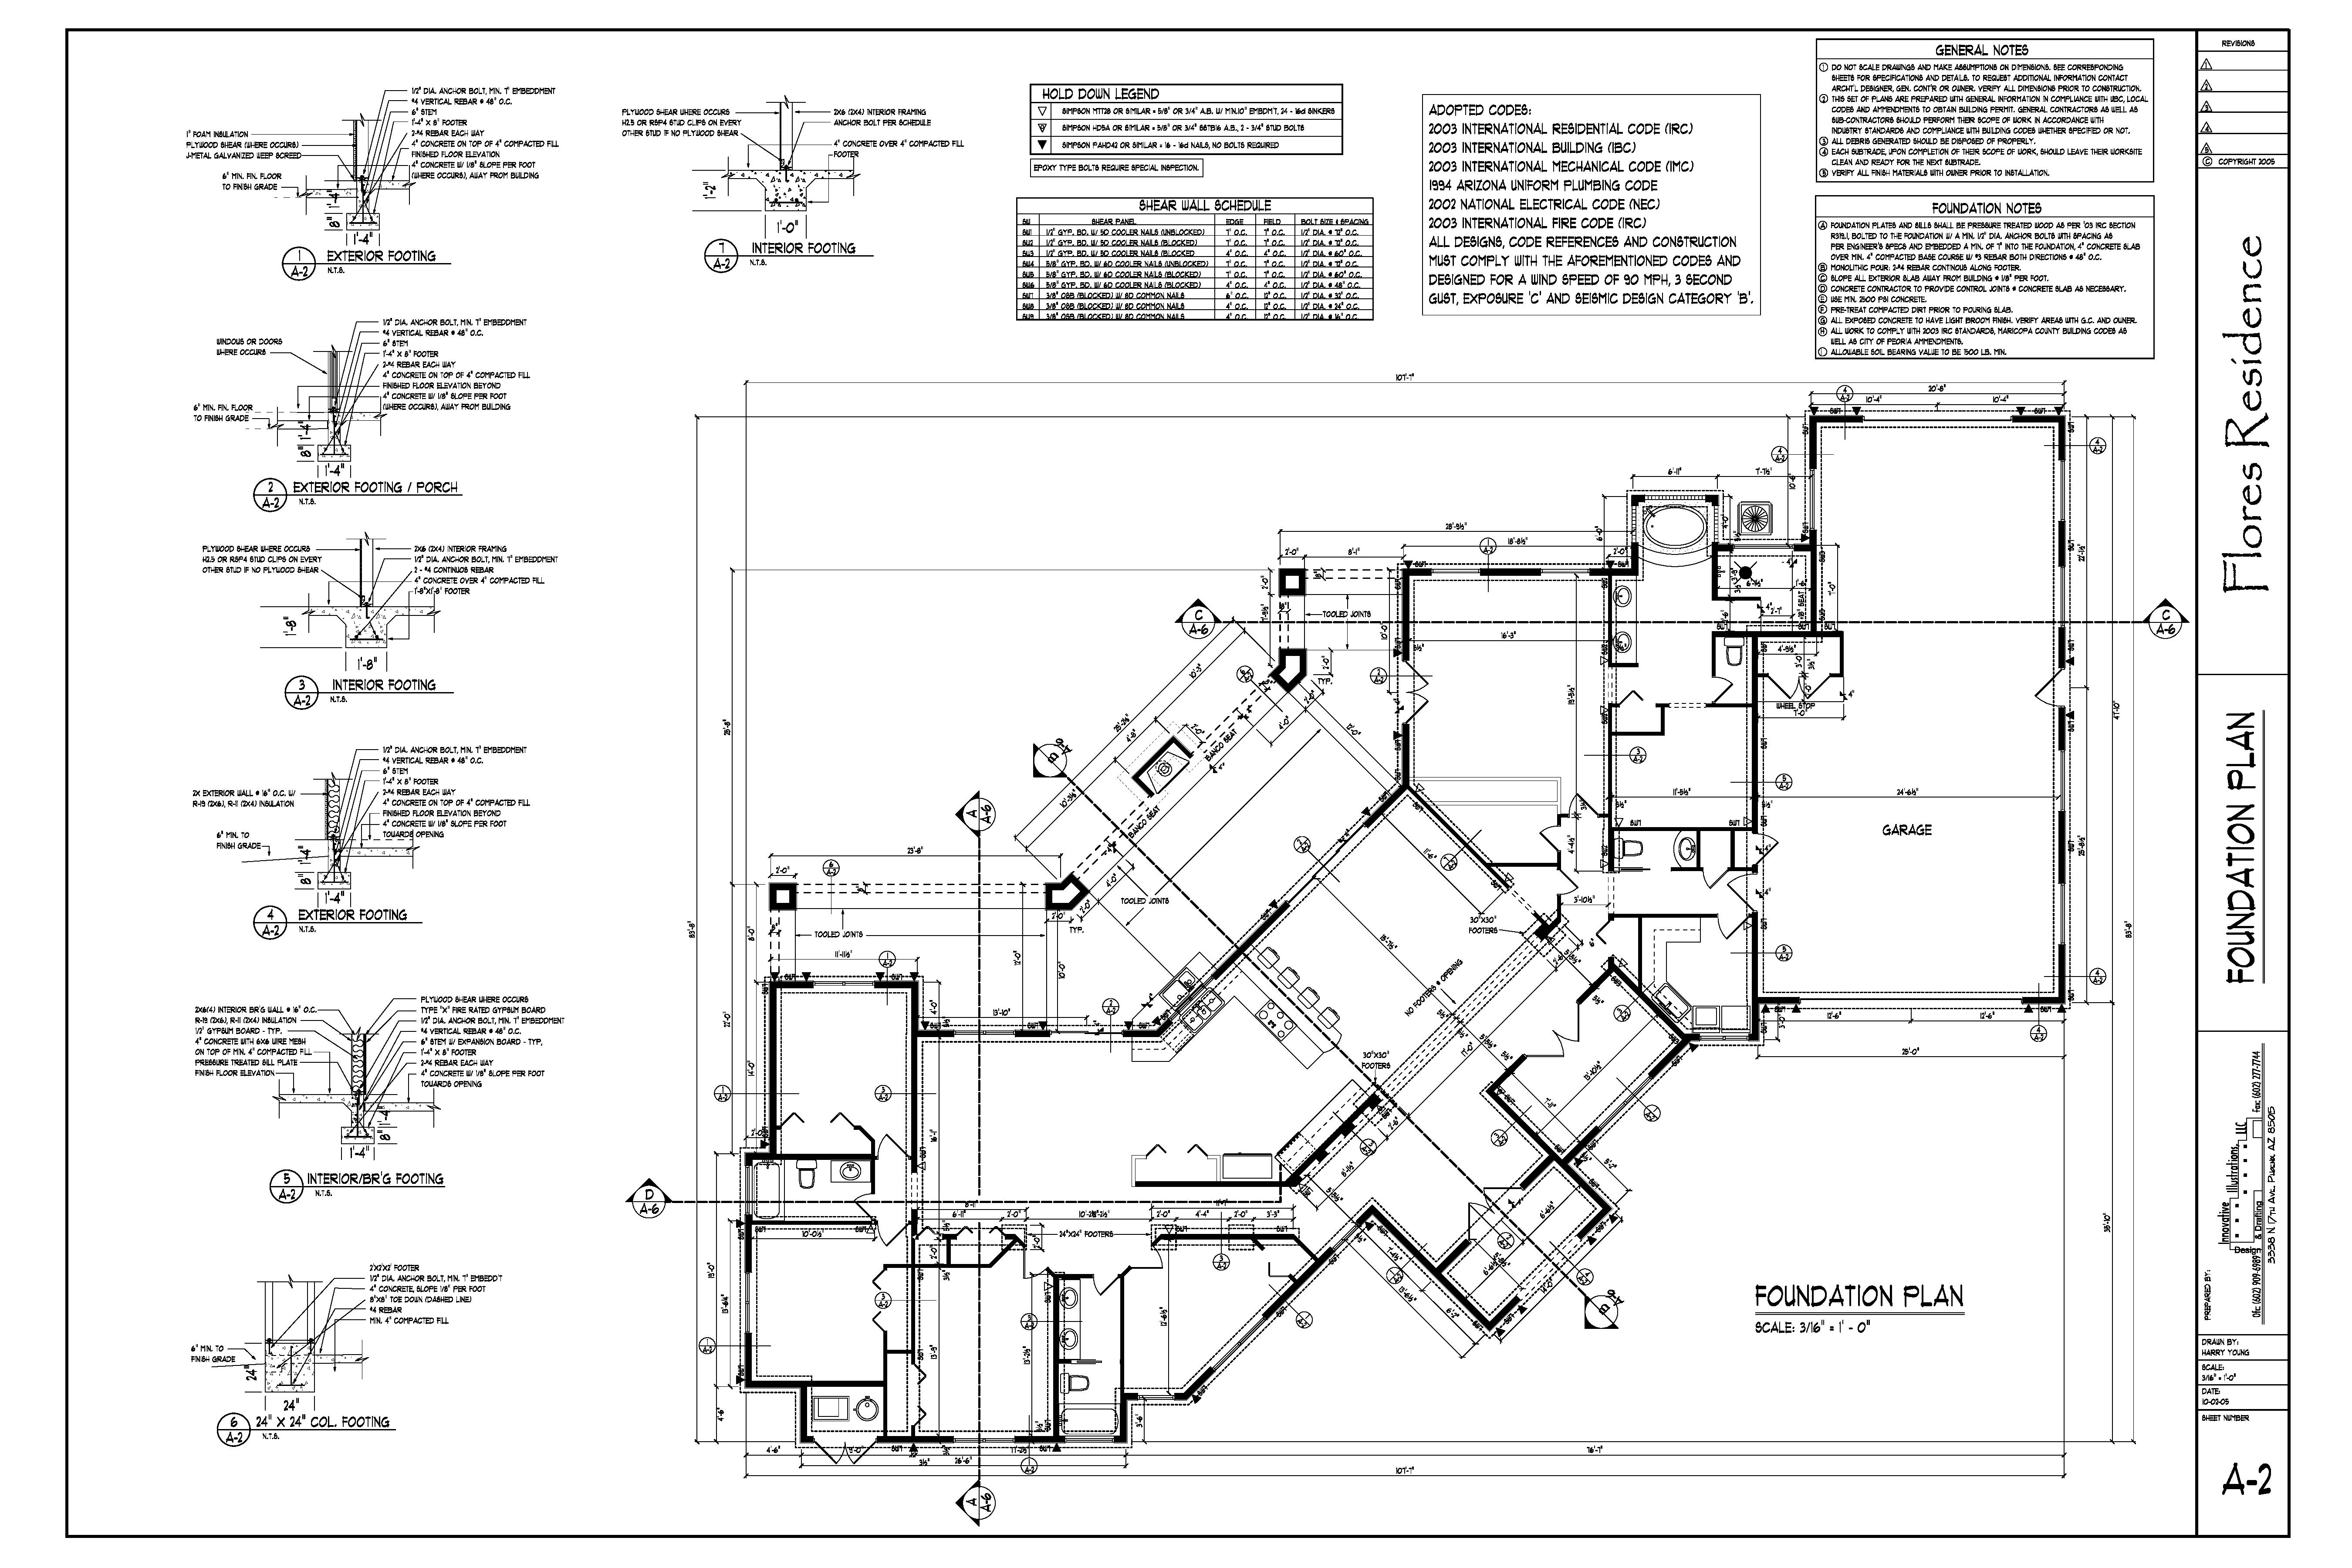 Drawings harry young design drafting for Foundation plan